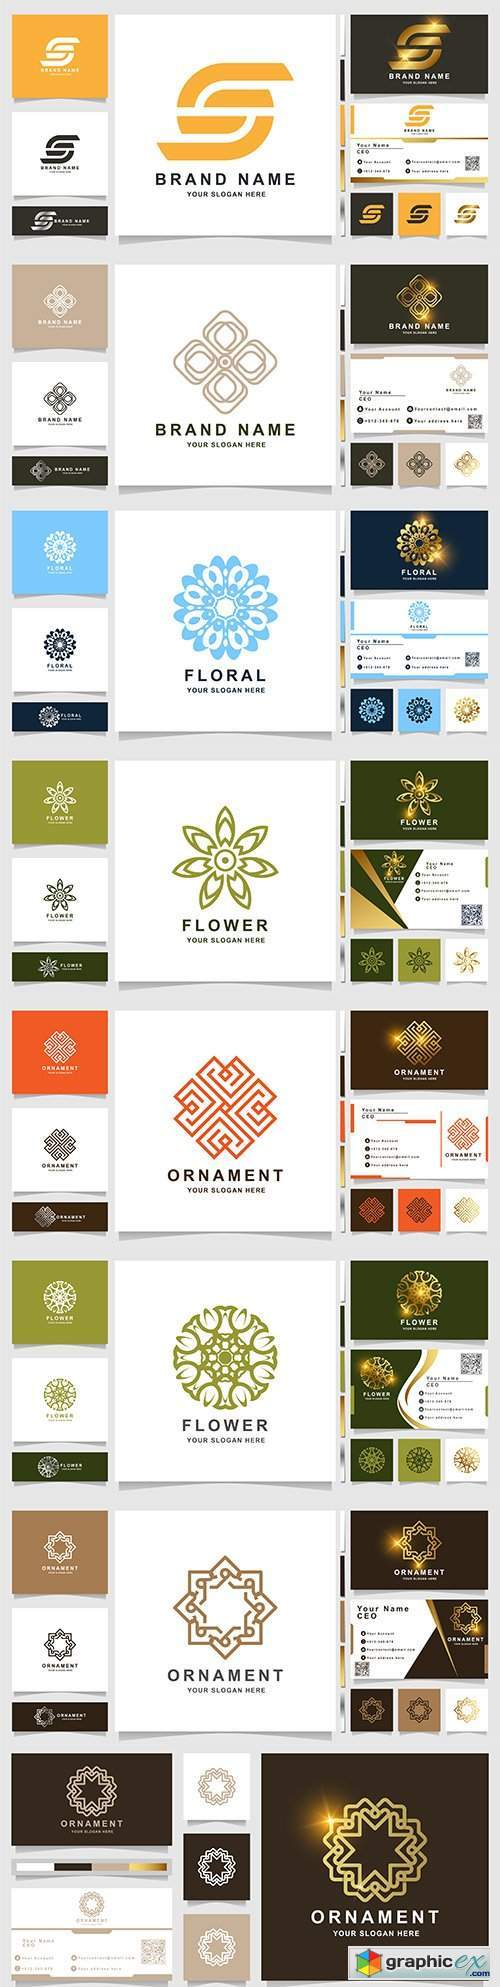 Minimalist elegant logo and business card design 8